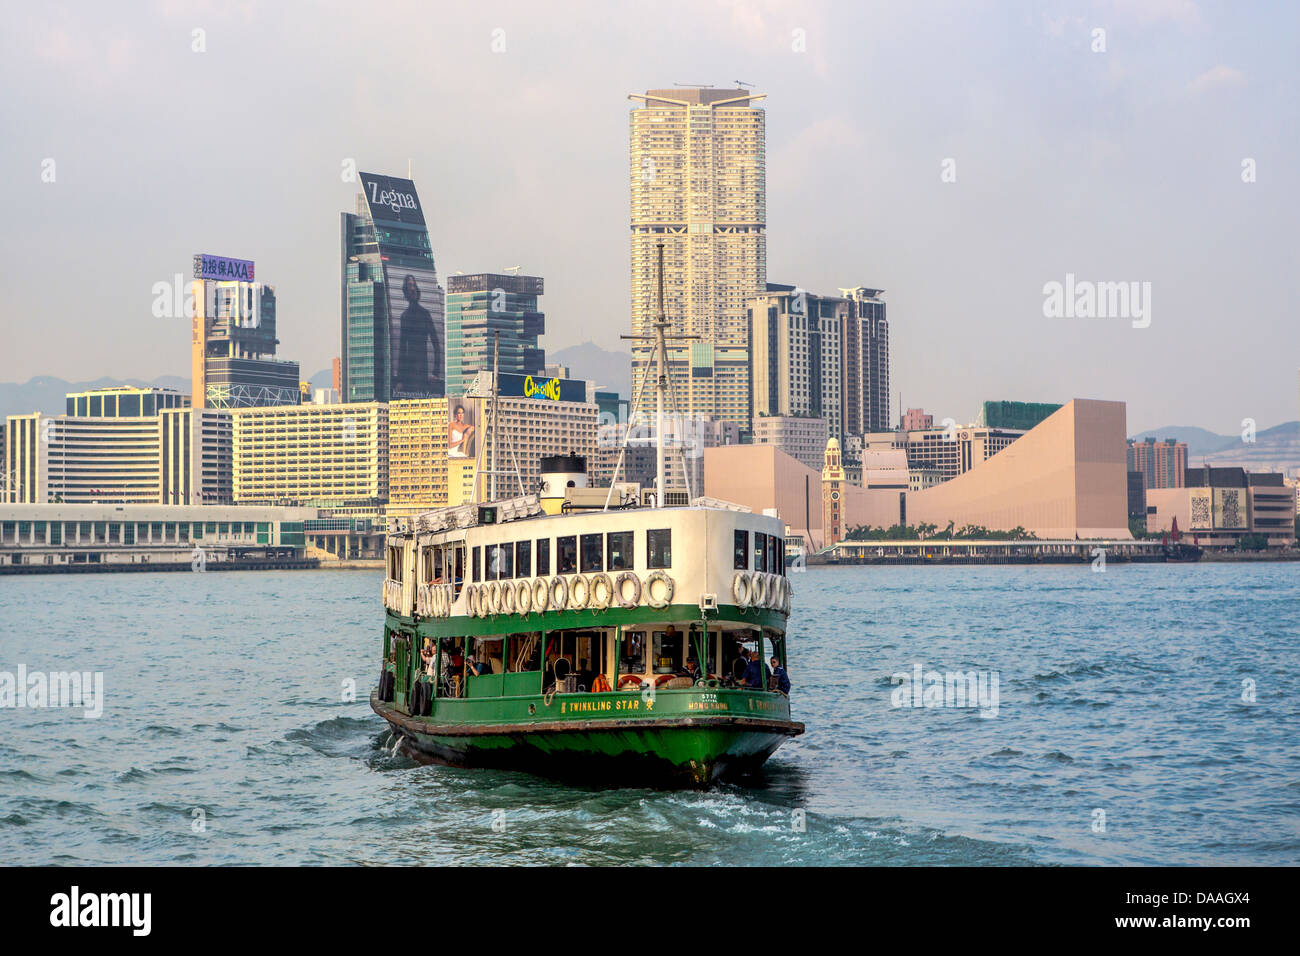 Hong Kong, Chine, Asie, Ville, District, Kowloon, Star Ferry, l'architecture, ferry, Skyline, des gratte-ciel, Photo Stock